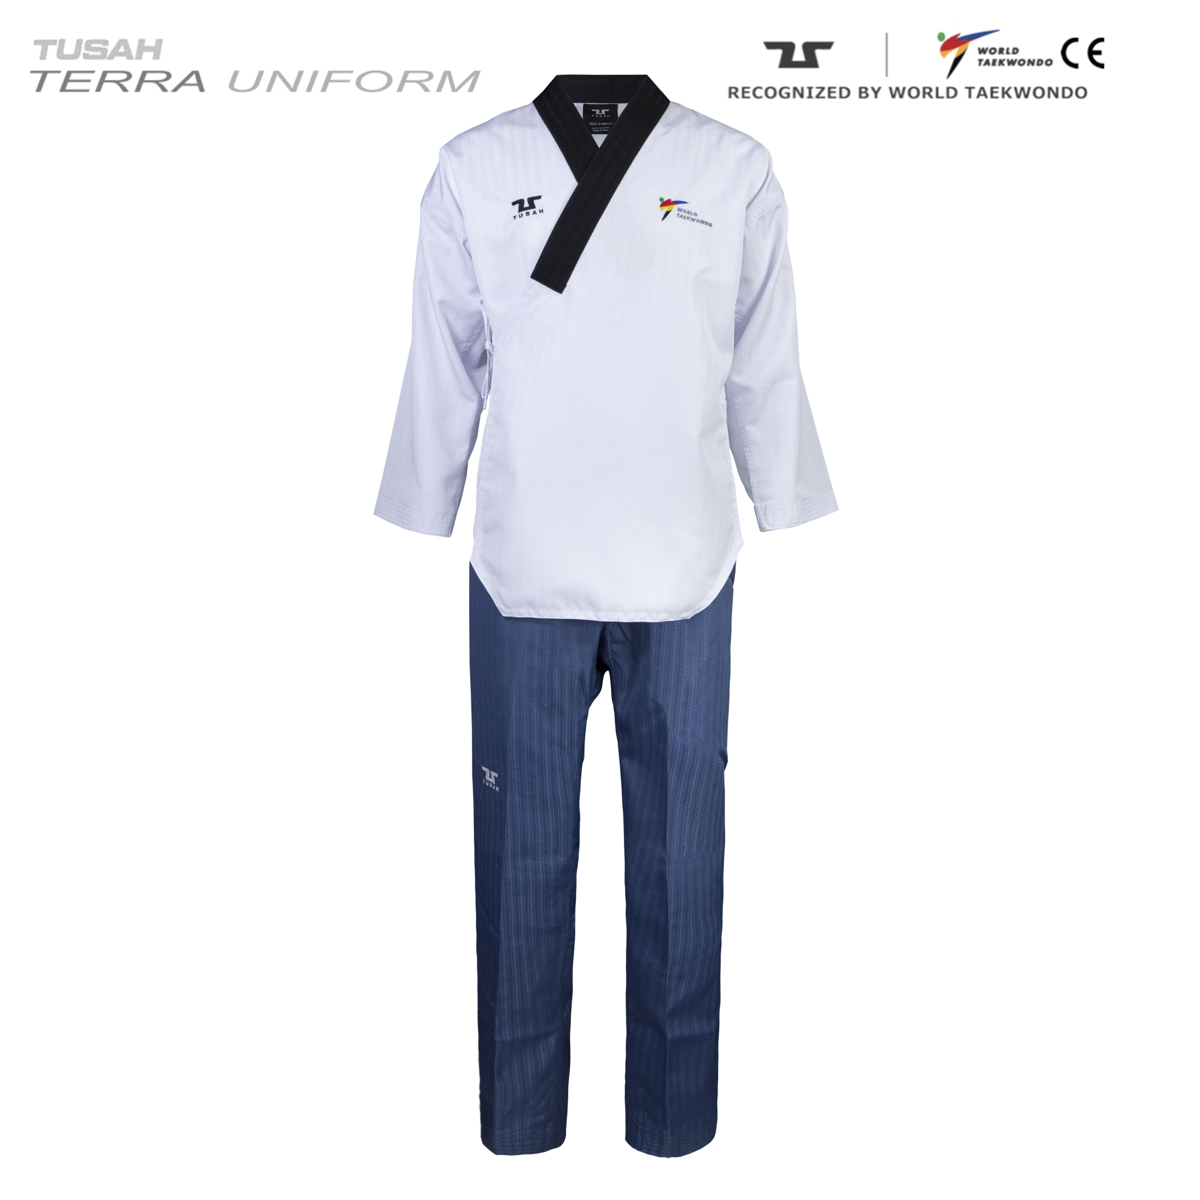 Terra Female Dan Uniform Tuash Taekwondo Poomsae Range